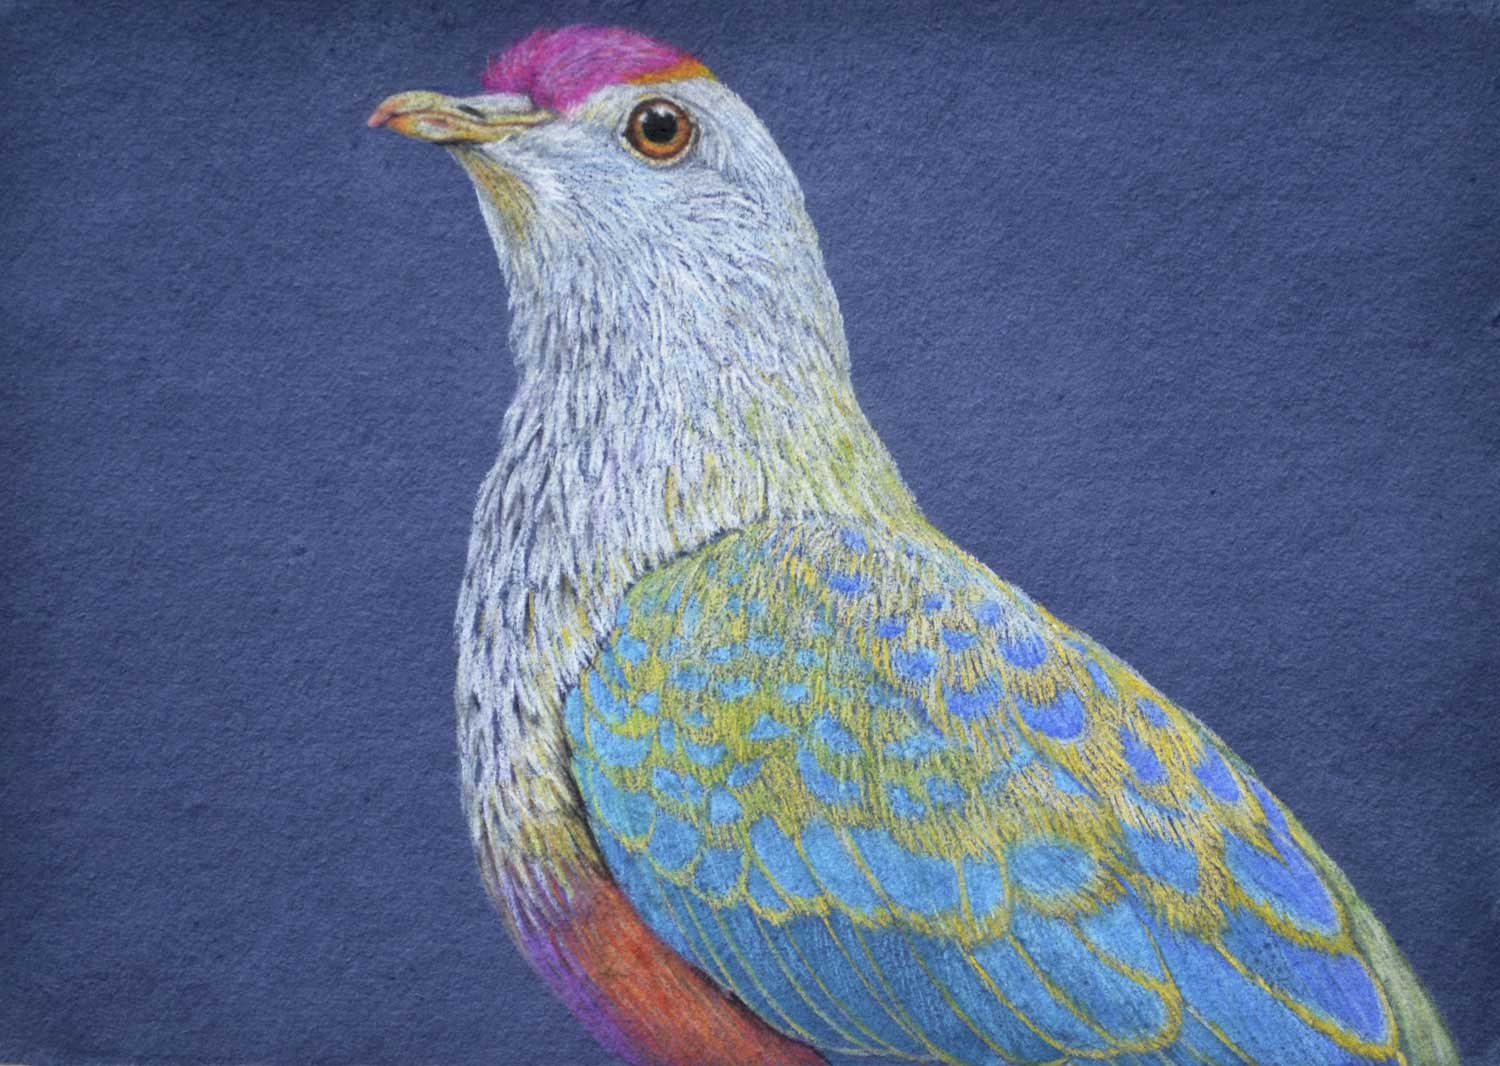 Rose Crowned Fruit Dove II 21 x 30 cm  PASTEL ON HANDMADE PAPER  $800